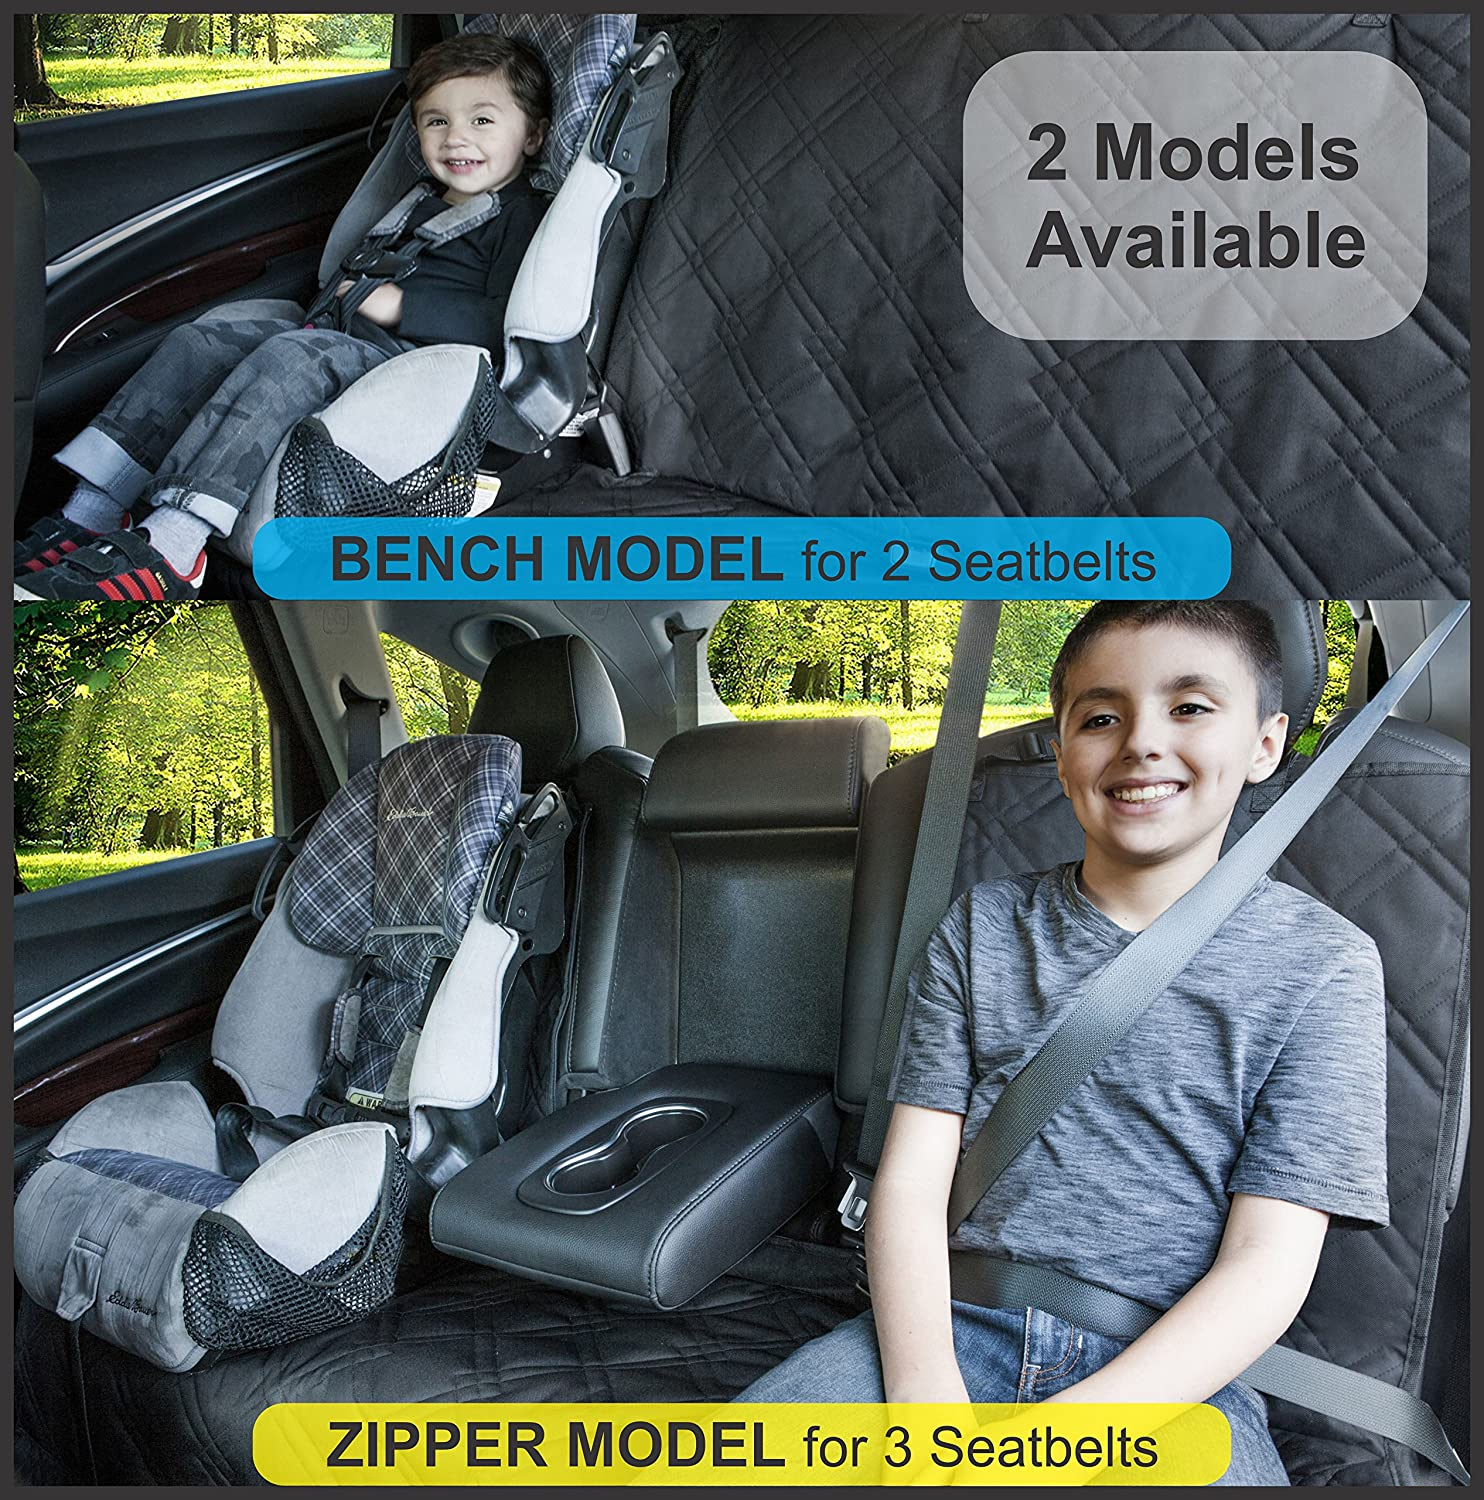 Available in Black Or Blue. Bench Seat Protector for Infant Carseats Lifelong Promise Catch Crumbs /& Spills